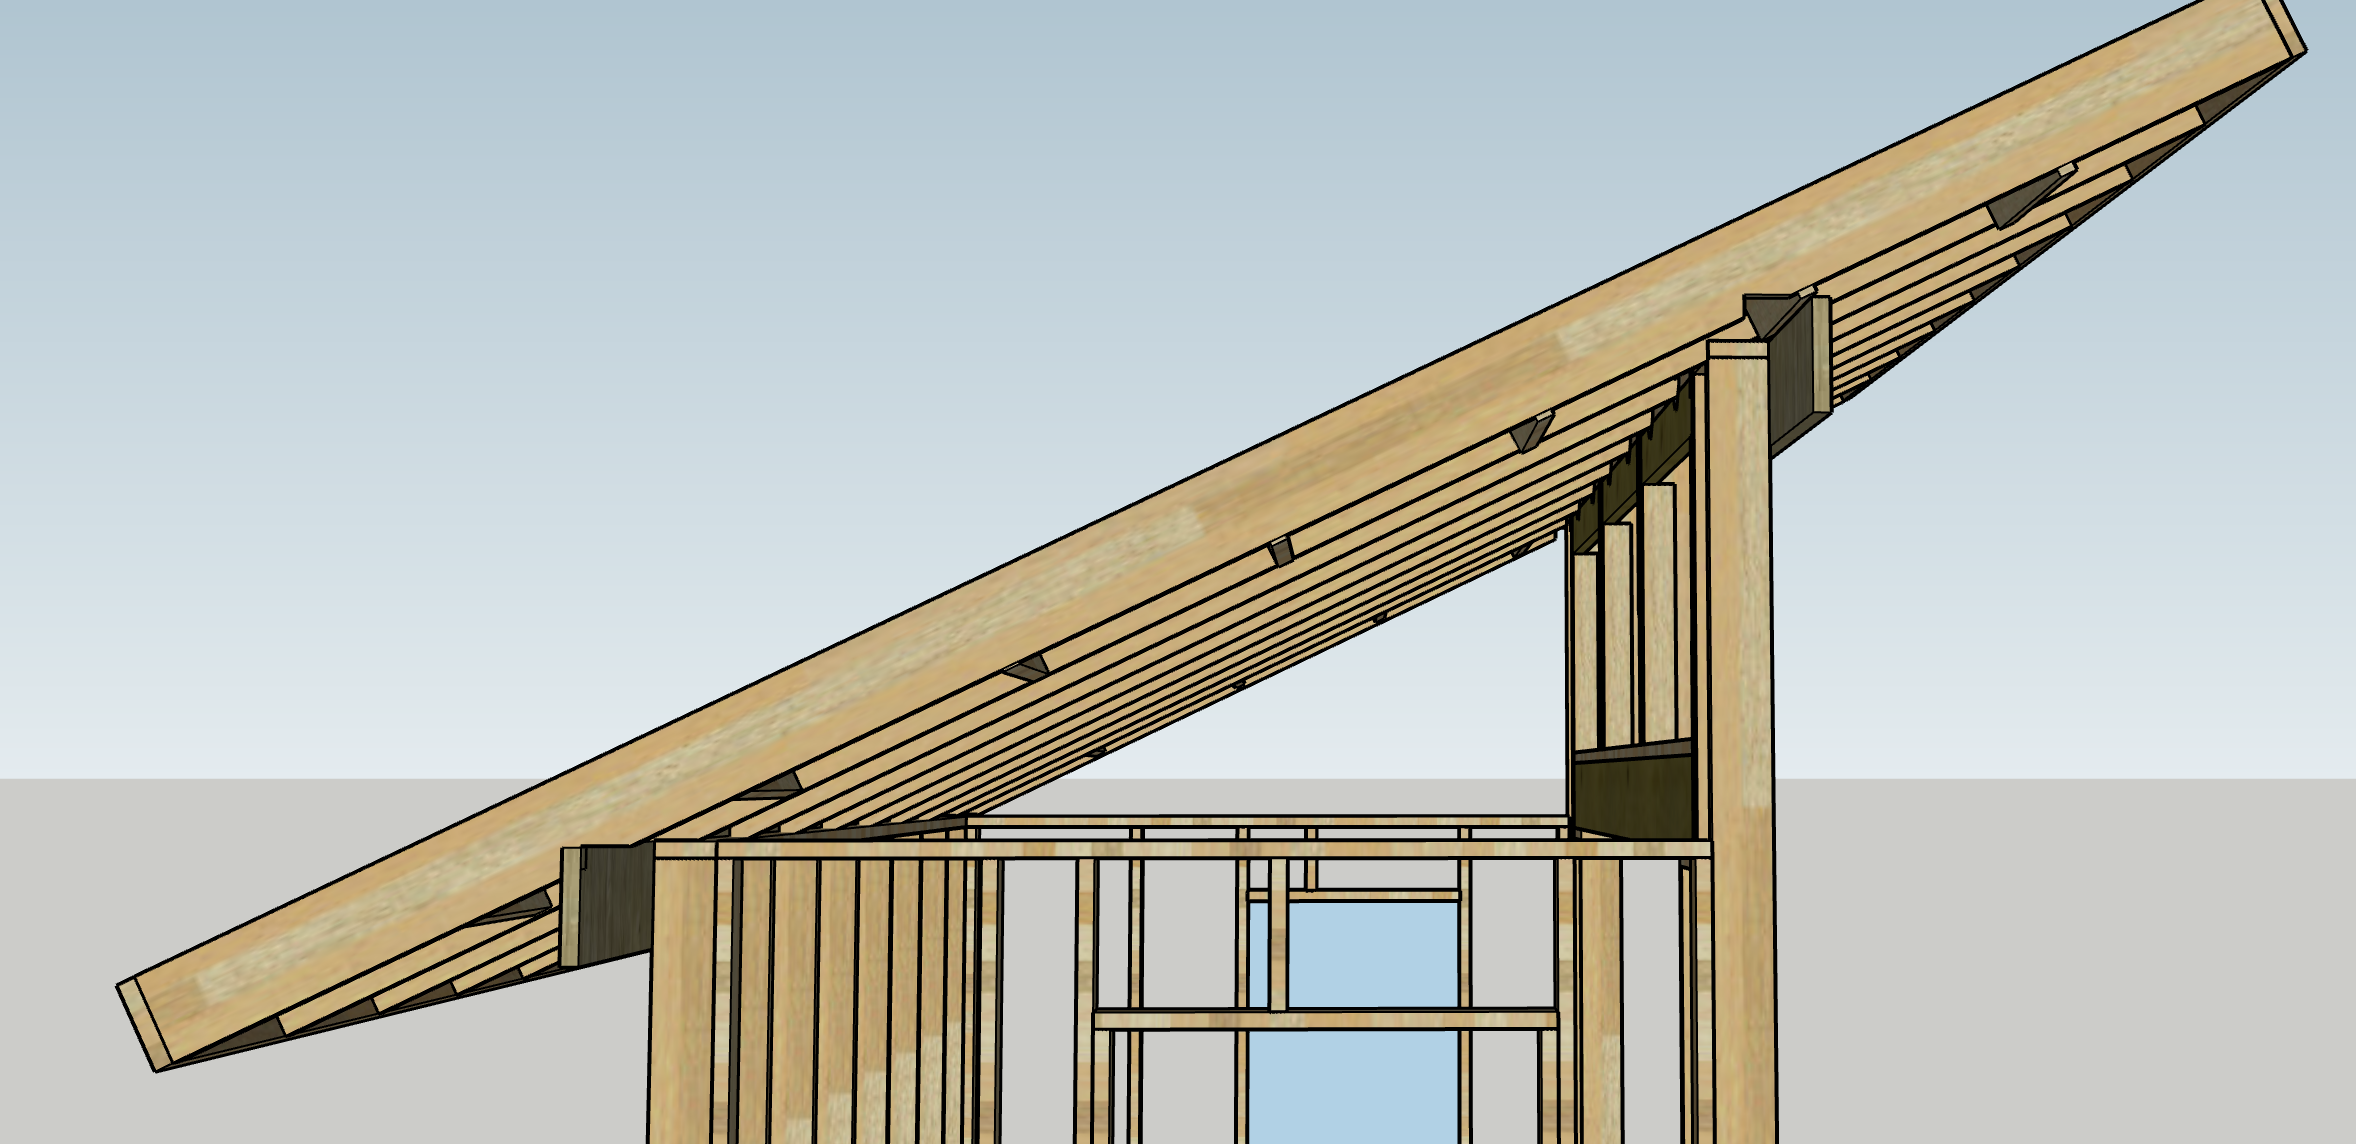 Shed / workshop framing design--is it too ambitious?-screen-shot-2020-04-26-12.56.34-pm.png